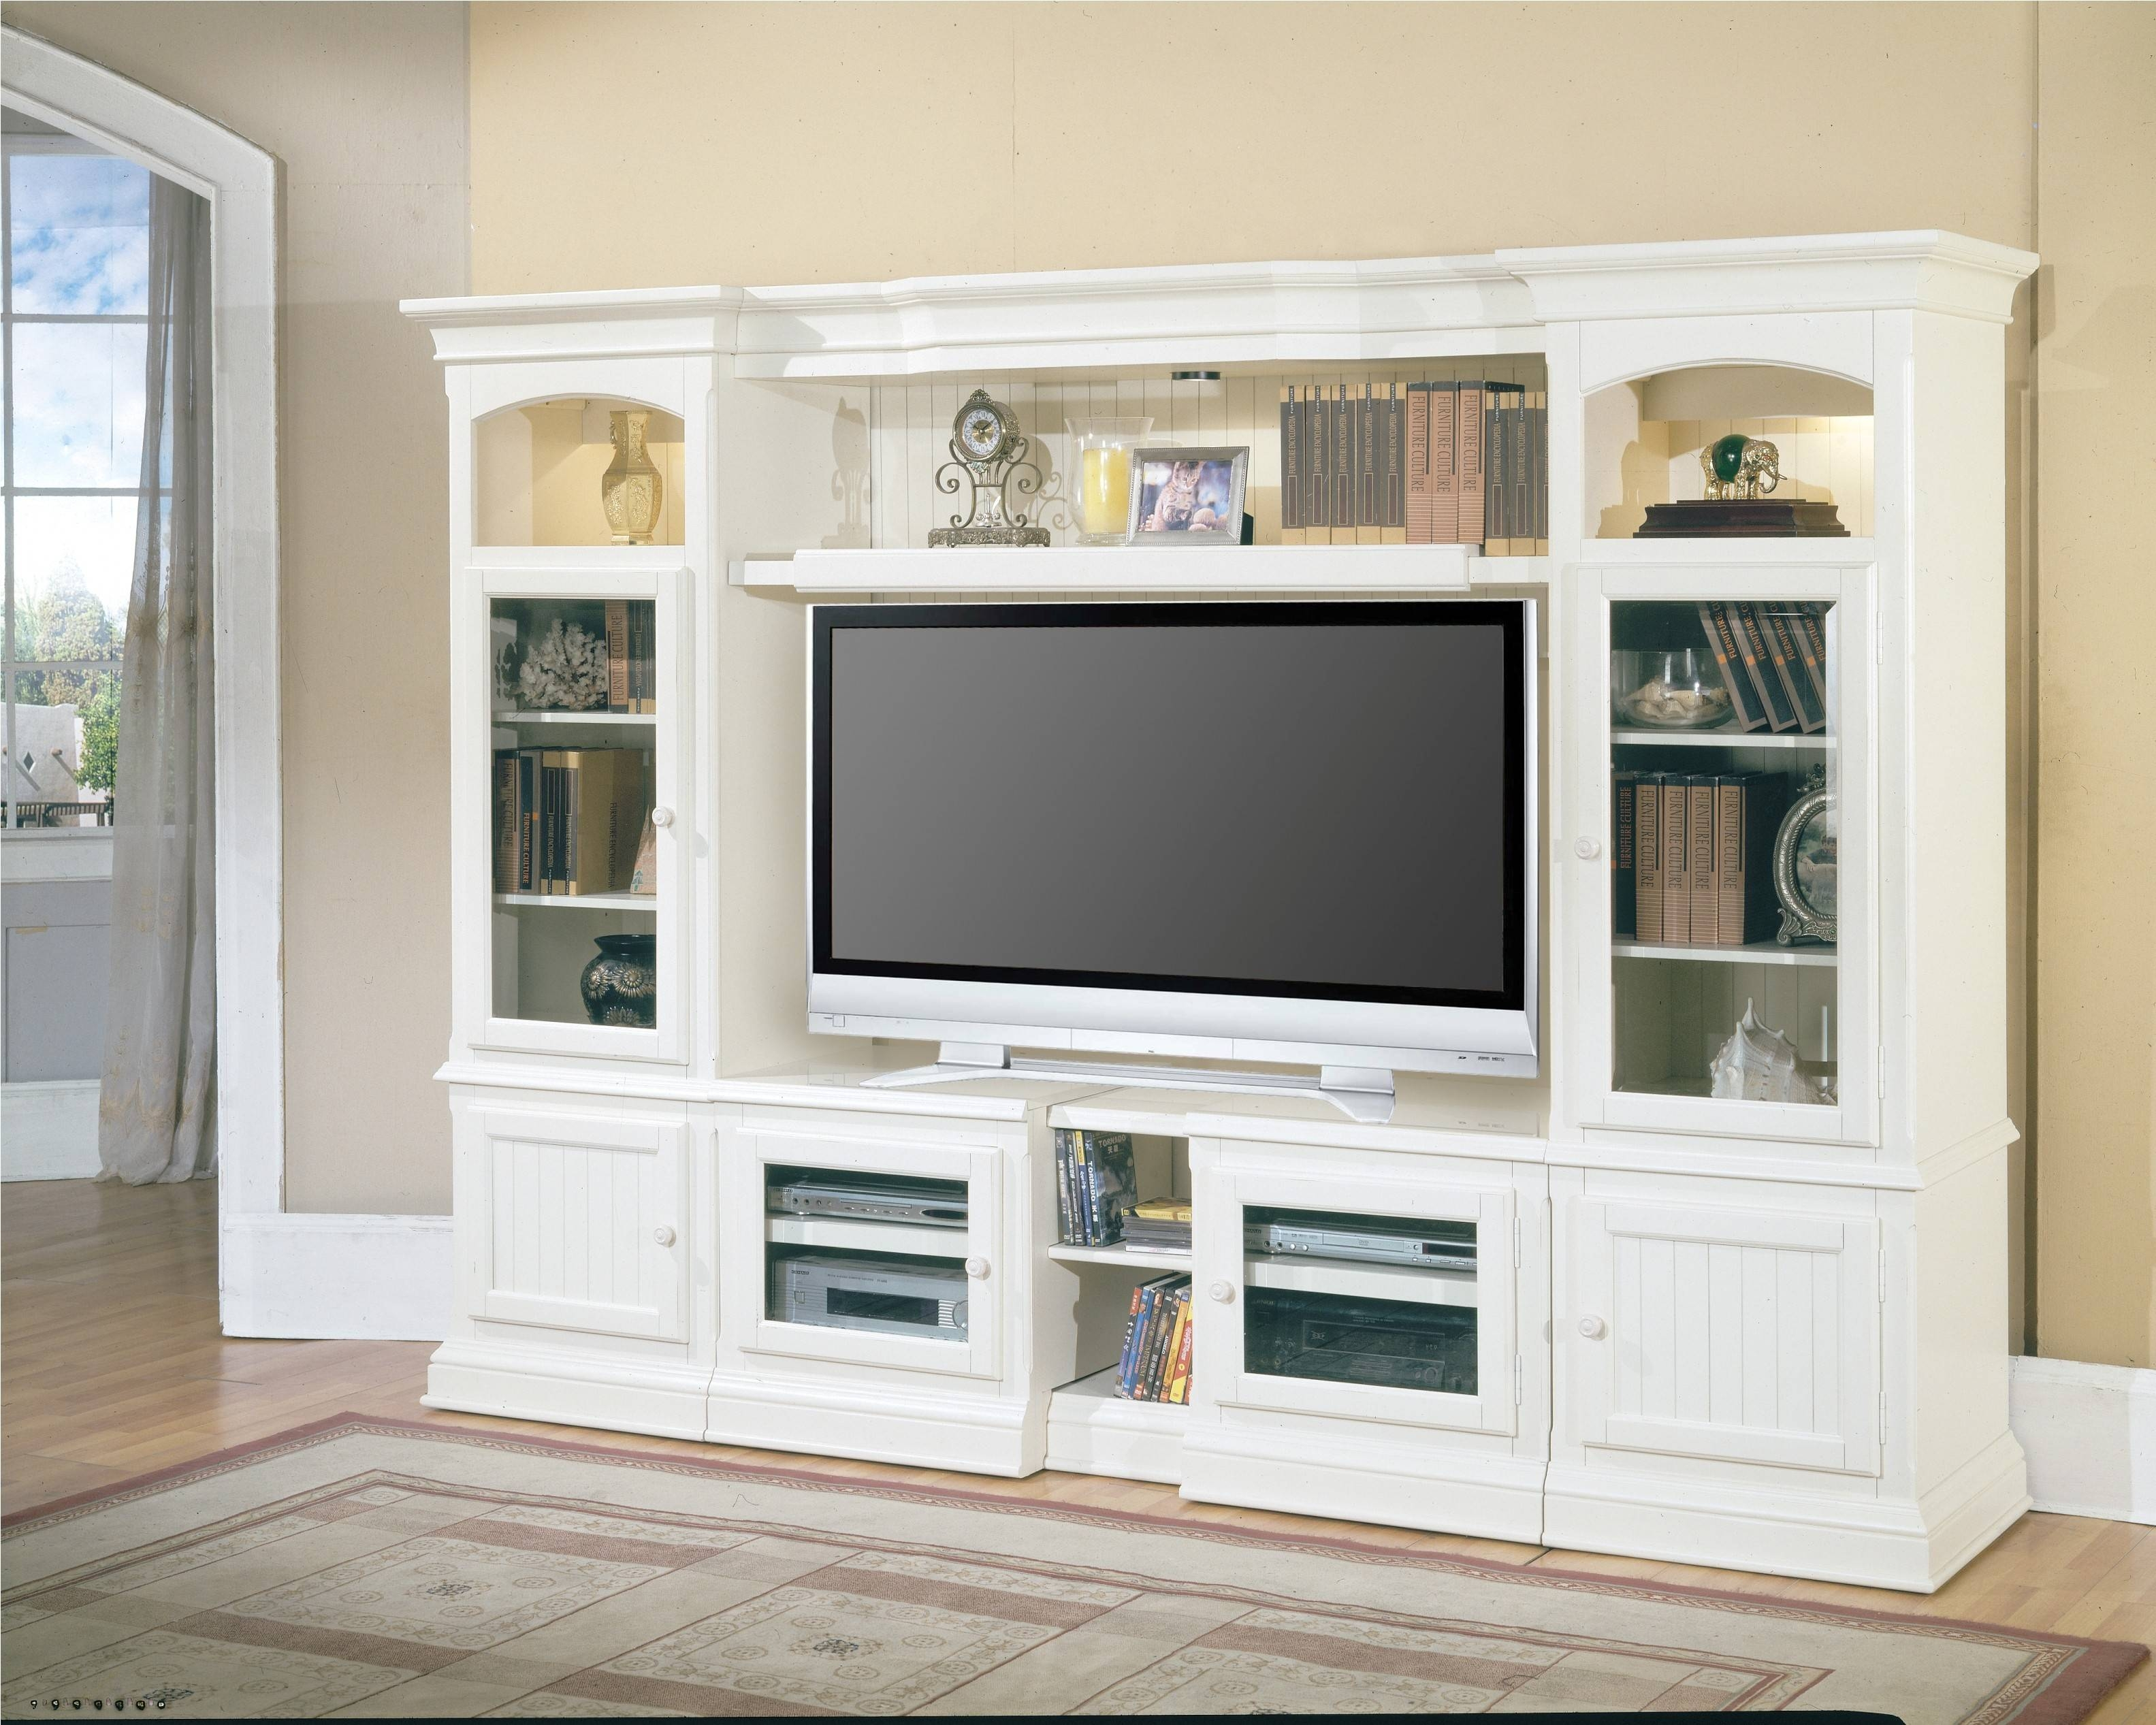 Bedroom : Tv Stand Modern Tv Cabinet Tv Shelf Unit Tv Cabinet with regard to Tv Cabinets and Wall Units (Image 2 of 15)